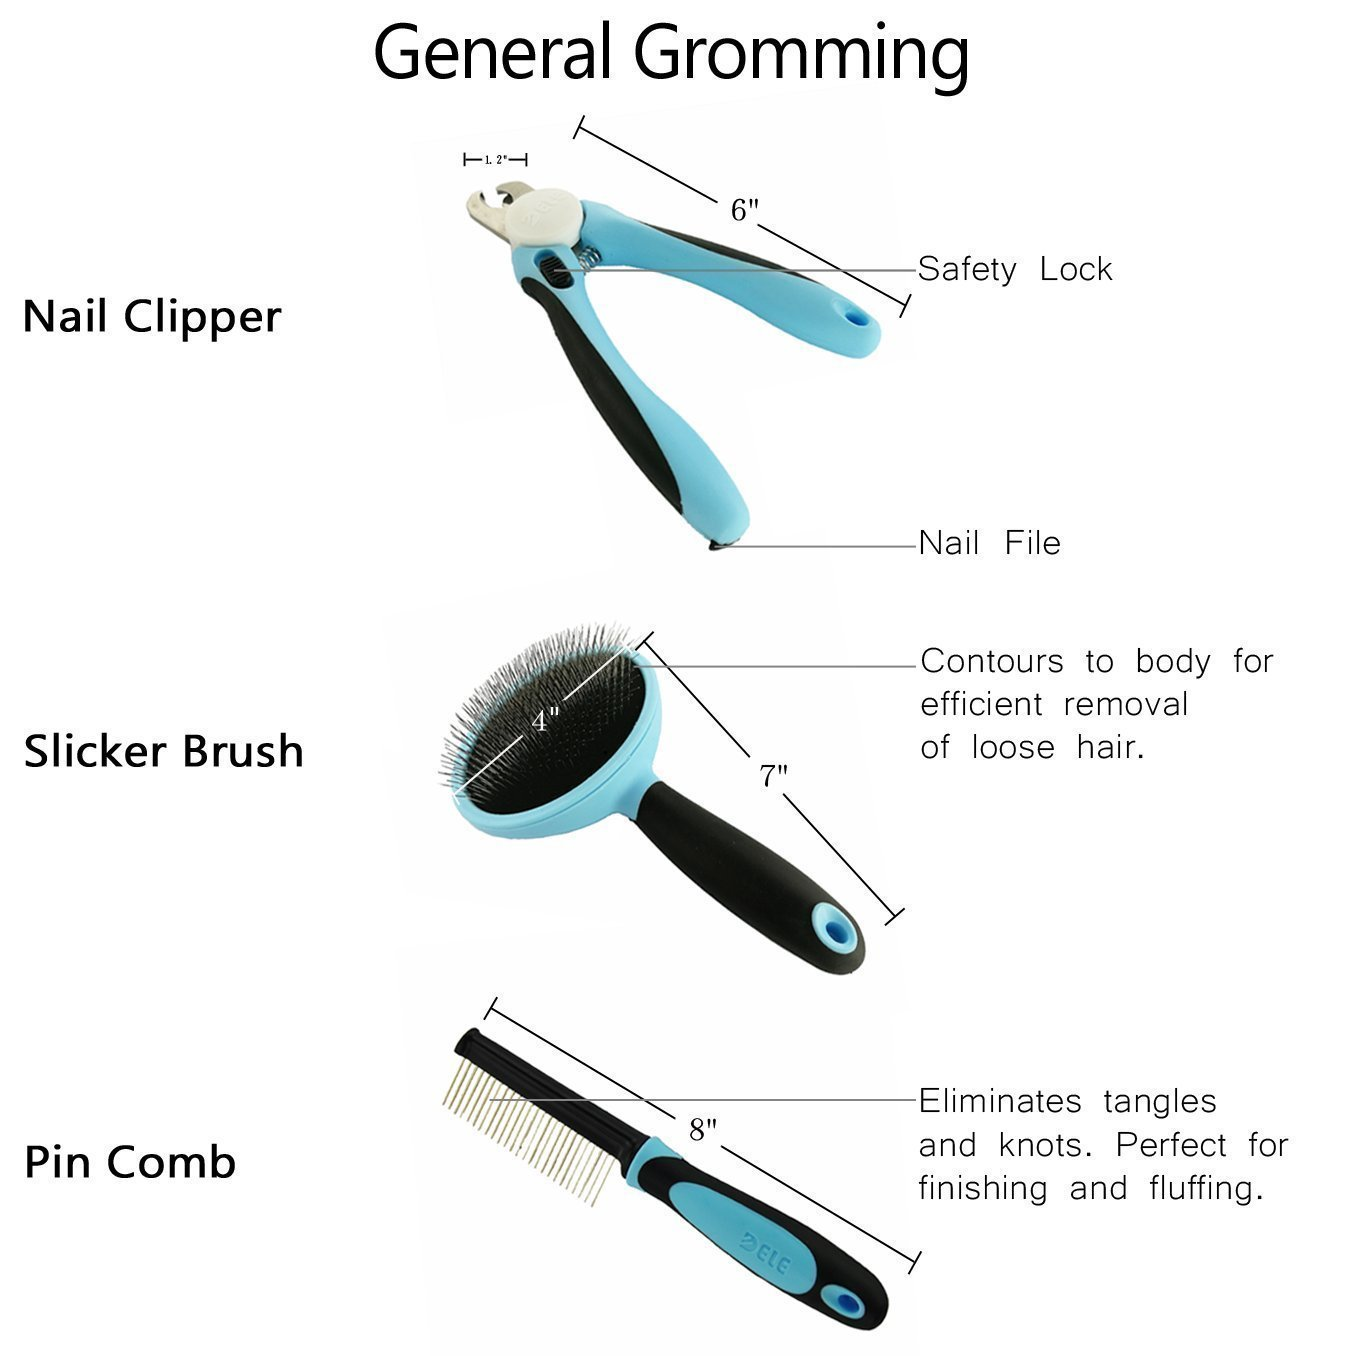 DELE Pet Grooming Tools Kit Including 5 Professional Tools,Pin Comb, Nail Clipper, Slicker Brush, Dematting Comb, 9.8 ft Retractable Dog Leash,Suitable For Medium/Small Pet Dogs or Cats (Blue)